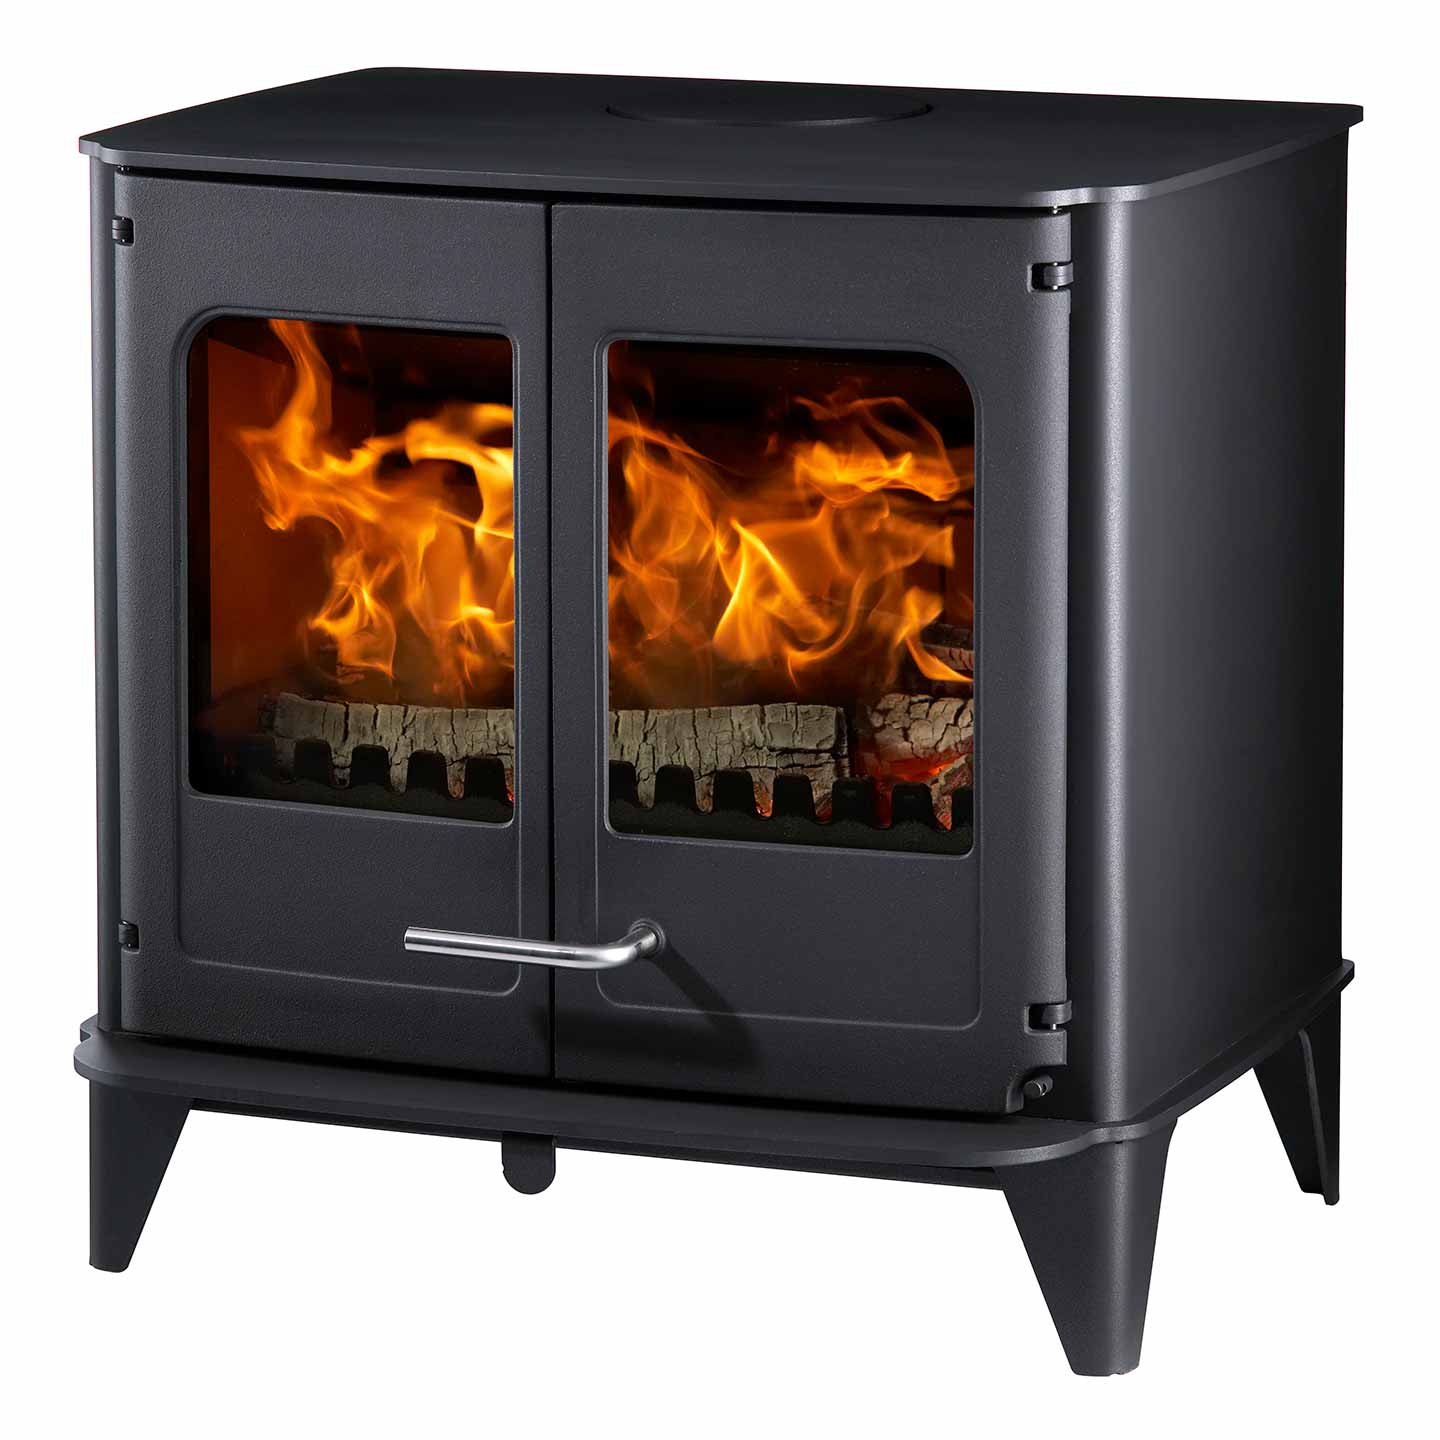 Morso 08 Multi Fuel Amp Wood Burning Stove The Stove Site